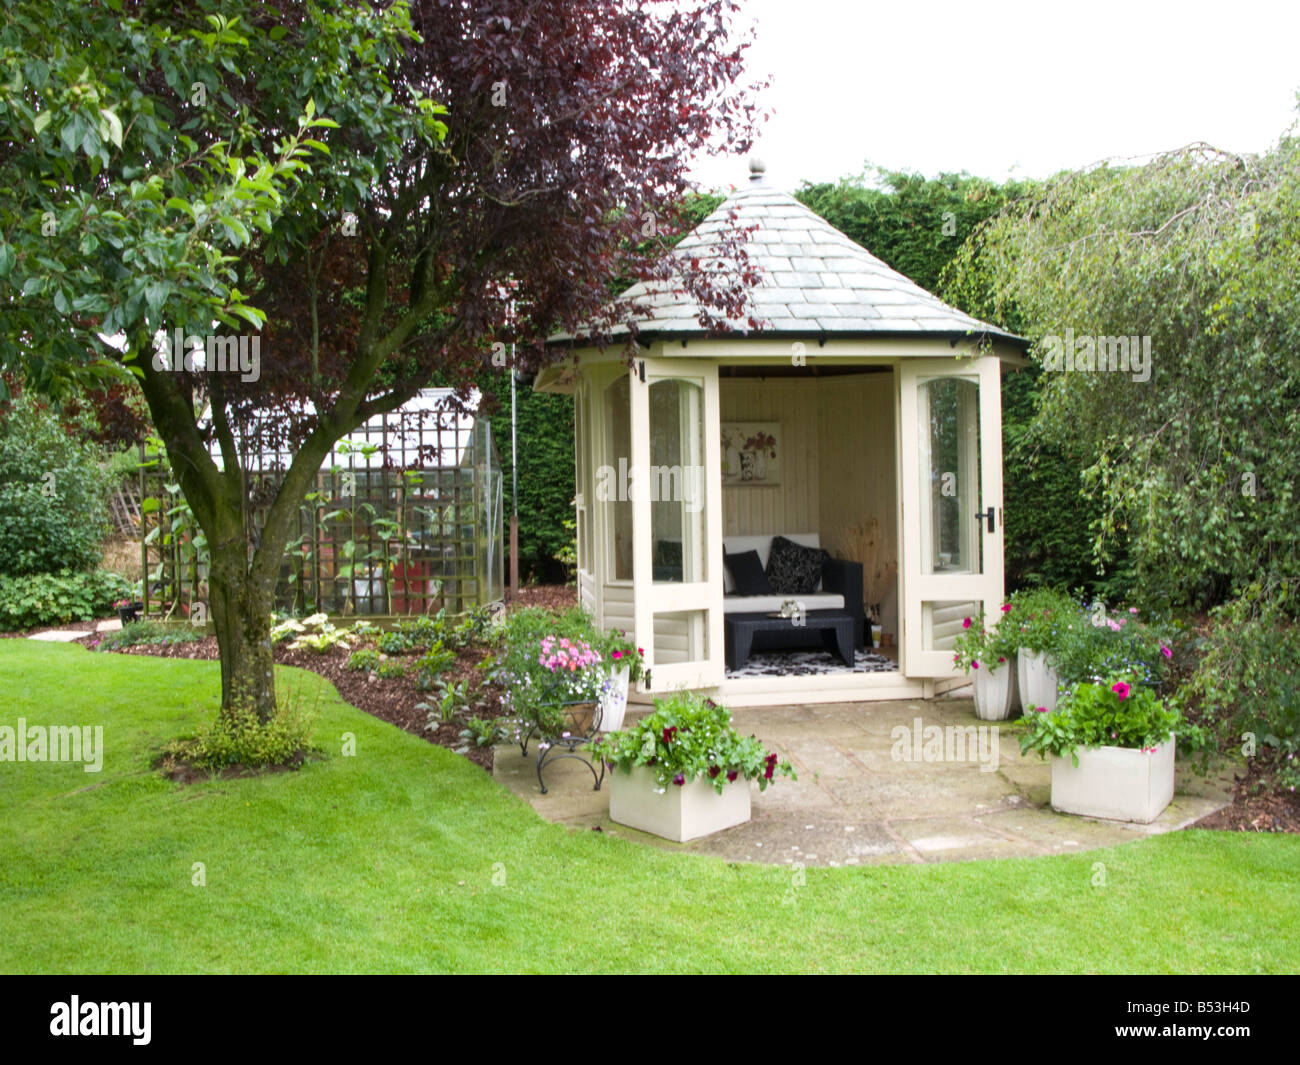 Summer house in a small garden stock photo royalty free for Garden designs with summer house